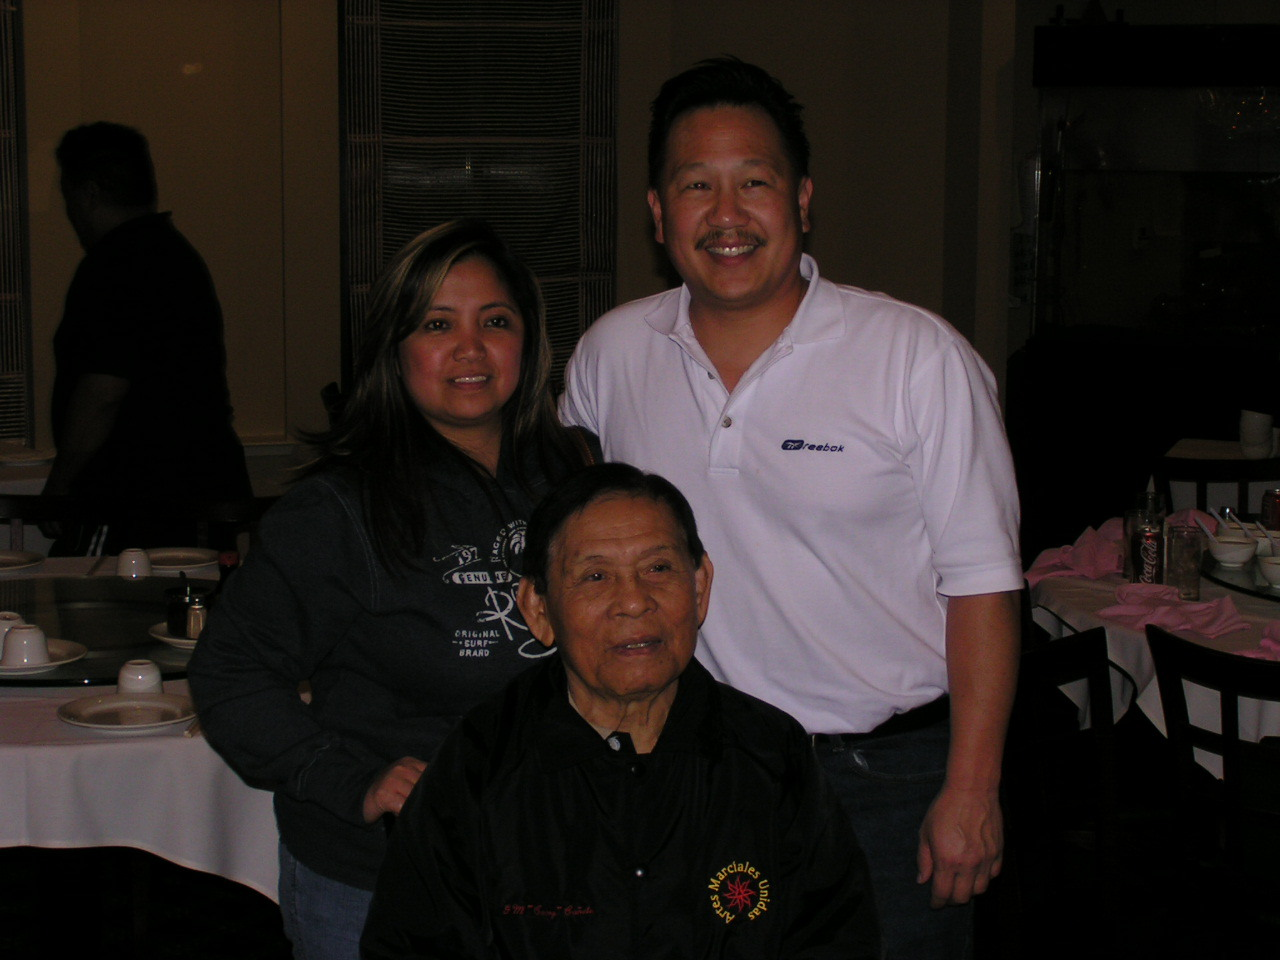 Passing of another Martial Art Grandmaster